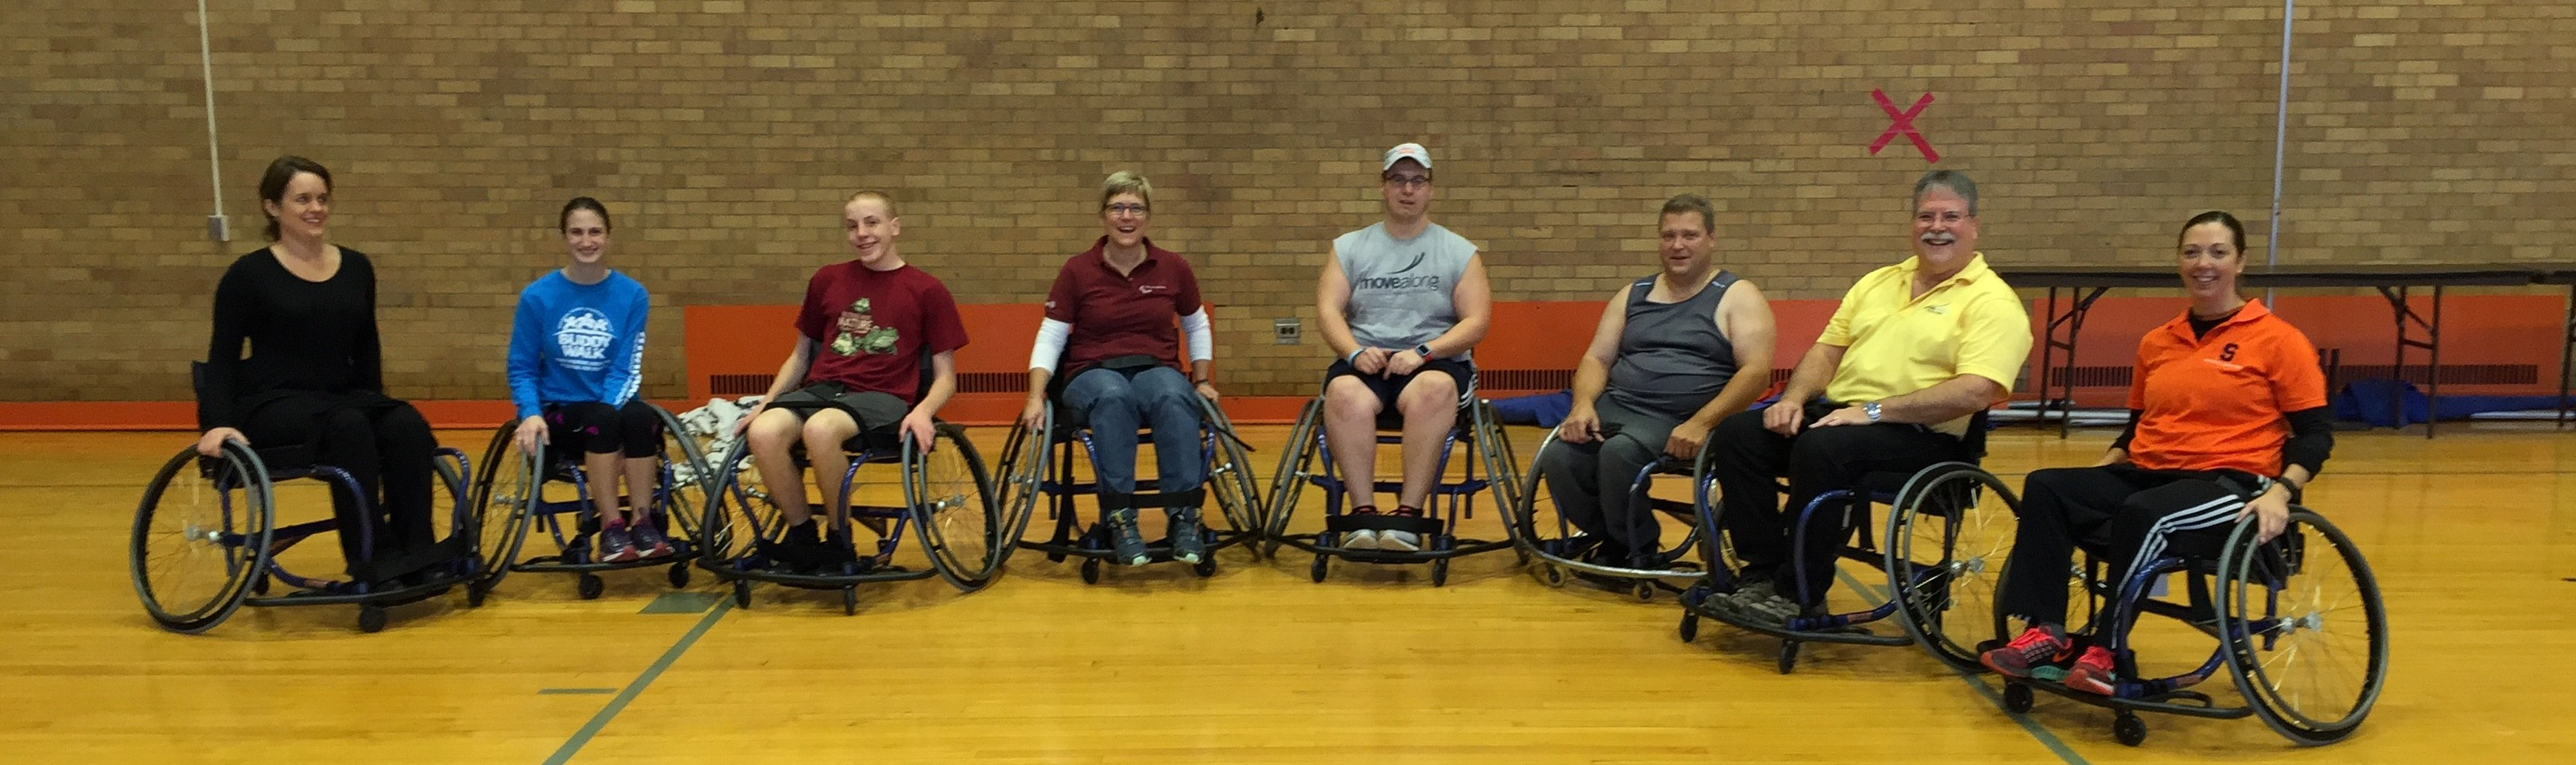 A group of 8 players made up of students, faculty, staff, alumni, and community members sit in a semi-circle after playing wheelchair basketball